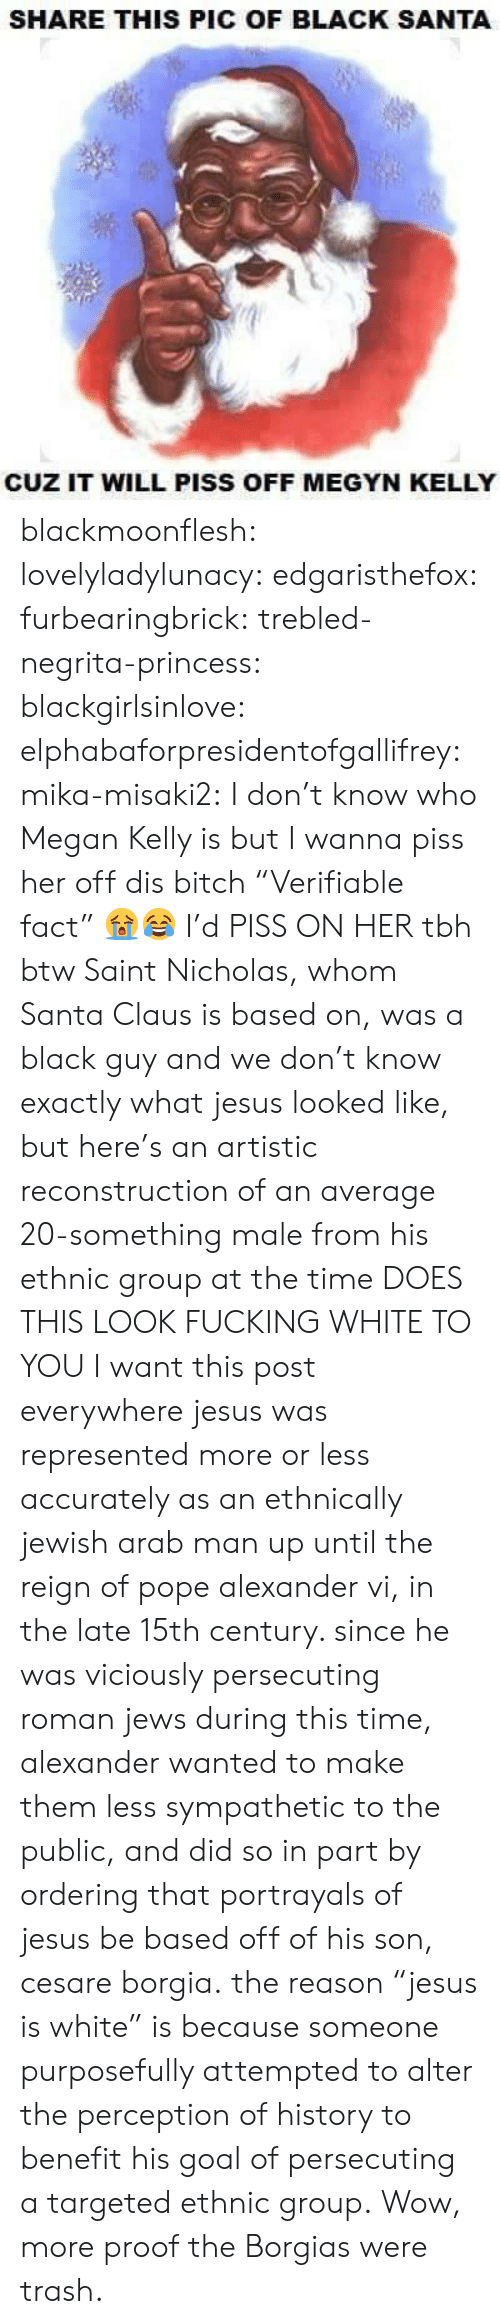 """Black Guy: SHARE THIS PIC OF BLACK SANTA  CUZ IT WILL PISS OFF MEGYN KELLY blackmoonflesh: lovelyladylunacy:  edgaristhefox:  furbearingbrick:  trebled-negrita-princess:  blackgirlsinlove:  elphabaforpresidentofgallifrey:  mika-misaki2:  I don't know who Megan Kelly is but I wanna piss her off  dis bitch   """"Verifiable fact"""" 😭😂  I'd PISS ON HER tbh  btw Saint Nicholas, whom Santa Clausis based on, was a black guy and we don't know exactly what jesus looked like, but here's an artistic reconstruction of an average 20-something male from his ethnic group at the time DOES THIS LOOK FUCKING WHITE TO YOU  I want this post everywhere  jesuswas represented more or less accurately as an ethnically jewish arab man up until the reign of pope alexander vi, in the late 15th century. since he was viciously persecuting roman jews during this time, alexander wanted to make them less sympathetic to the public, and did so in part by ordering that portrayals of jesus be based offof his son, cesareborgia. the reason""""jesus is white"""" is because someone purposefully attempted to alter the perception of history to benefit his goal of persecuting a targeted ethnic group.  Wow, more proof the Borgias were trash."""